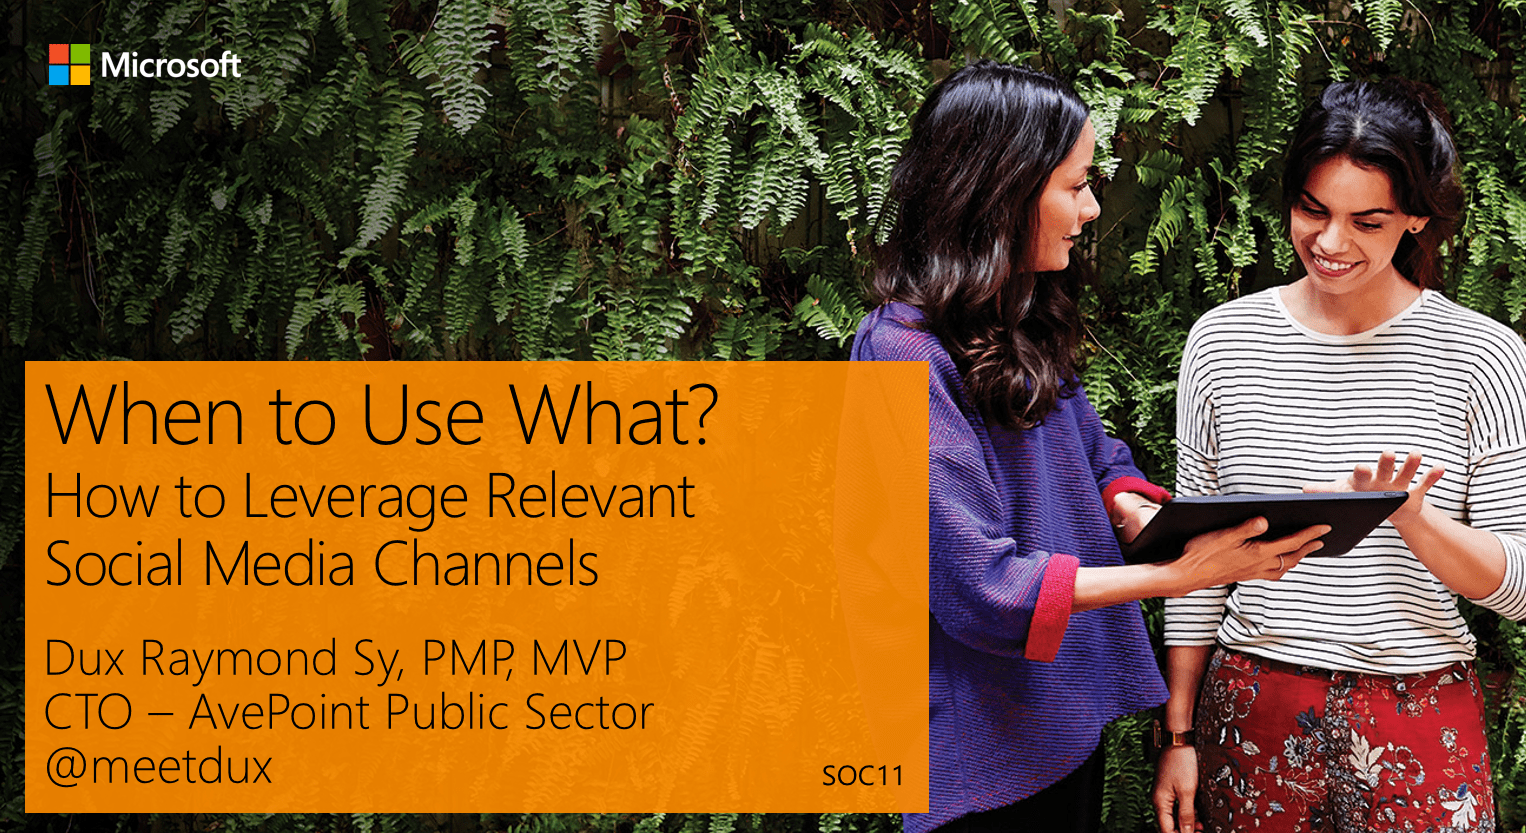 When to use what? How to leverage relevant social media channels #wpc15